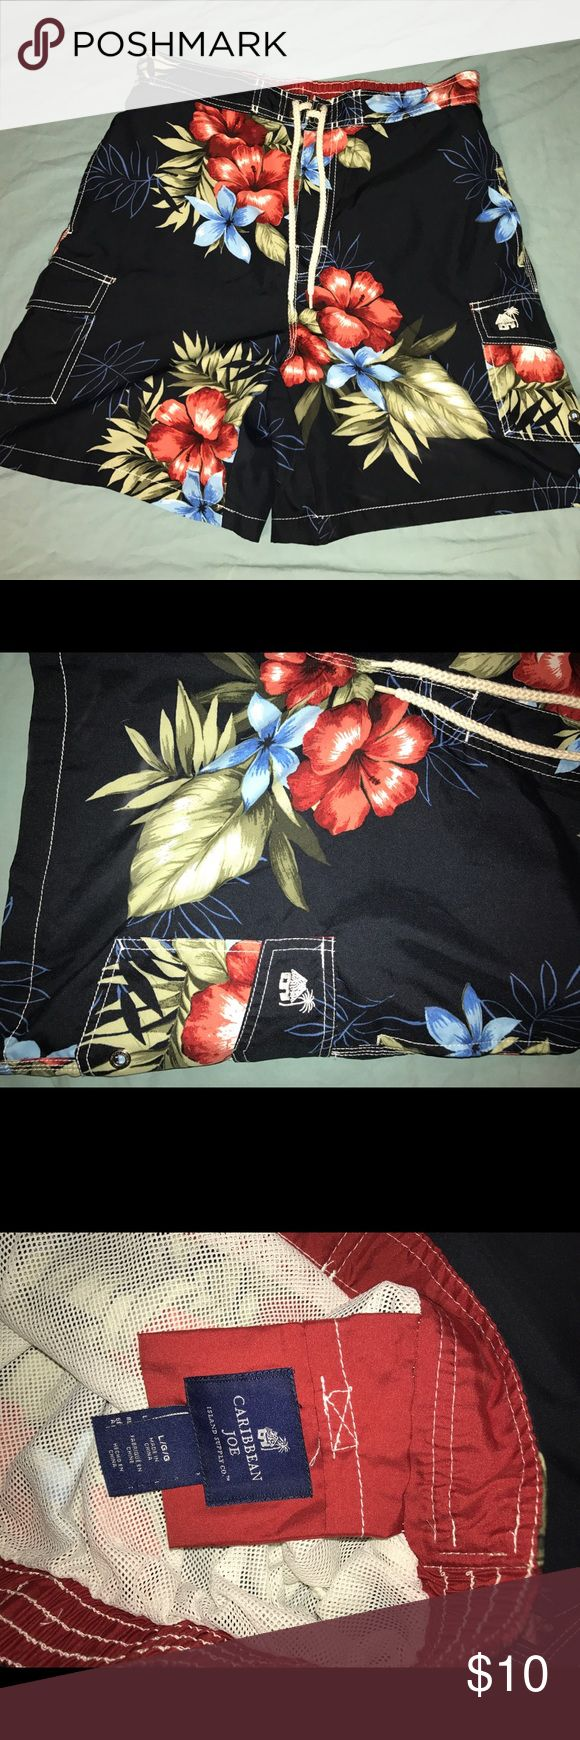 Caribbean Joe Mens Swim trunk shorts L Caribbean Joe Mens Swim trunk shorts Size large. Excellent barely used condition. No stains, damage or defect. Caribbean Joe Swim Swim Trunks